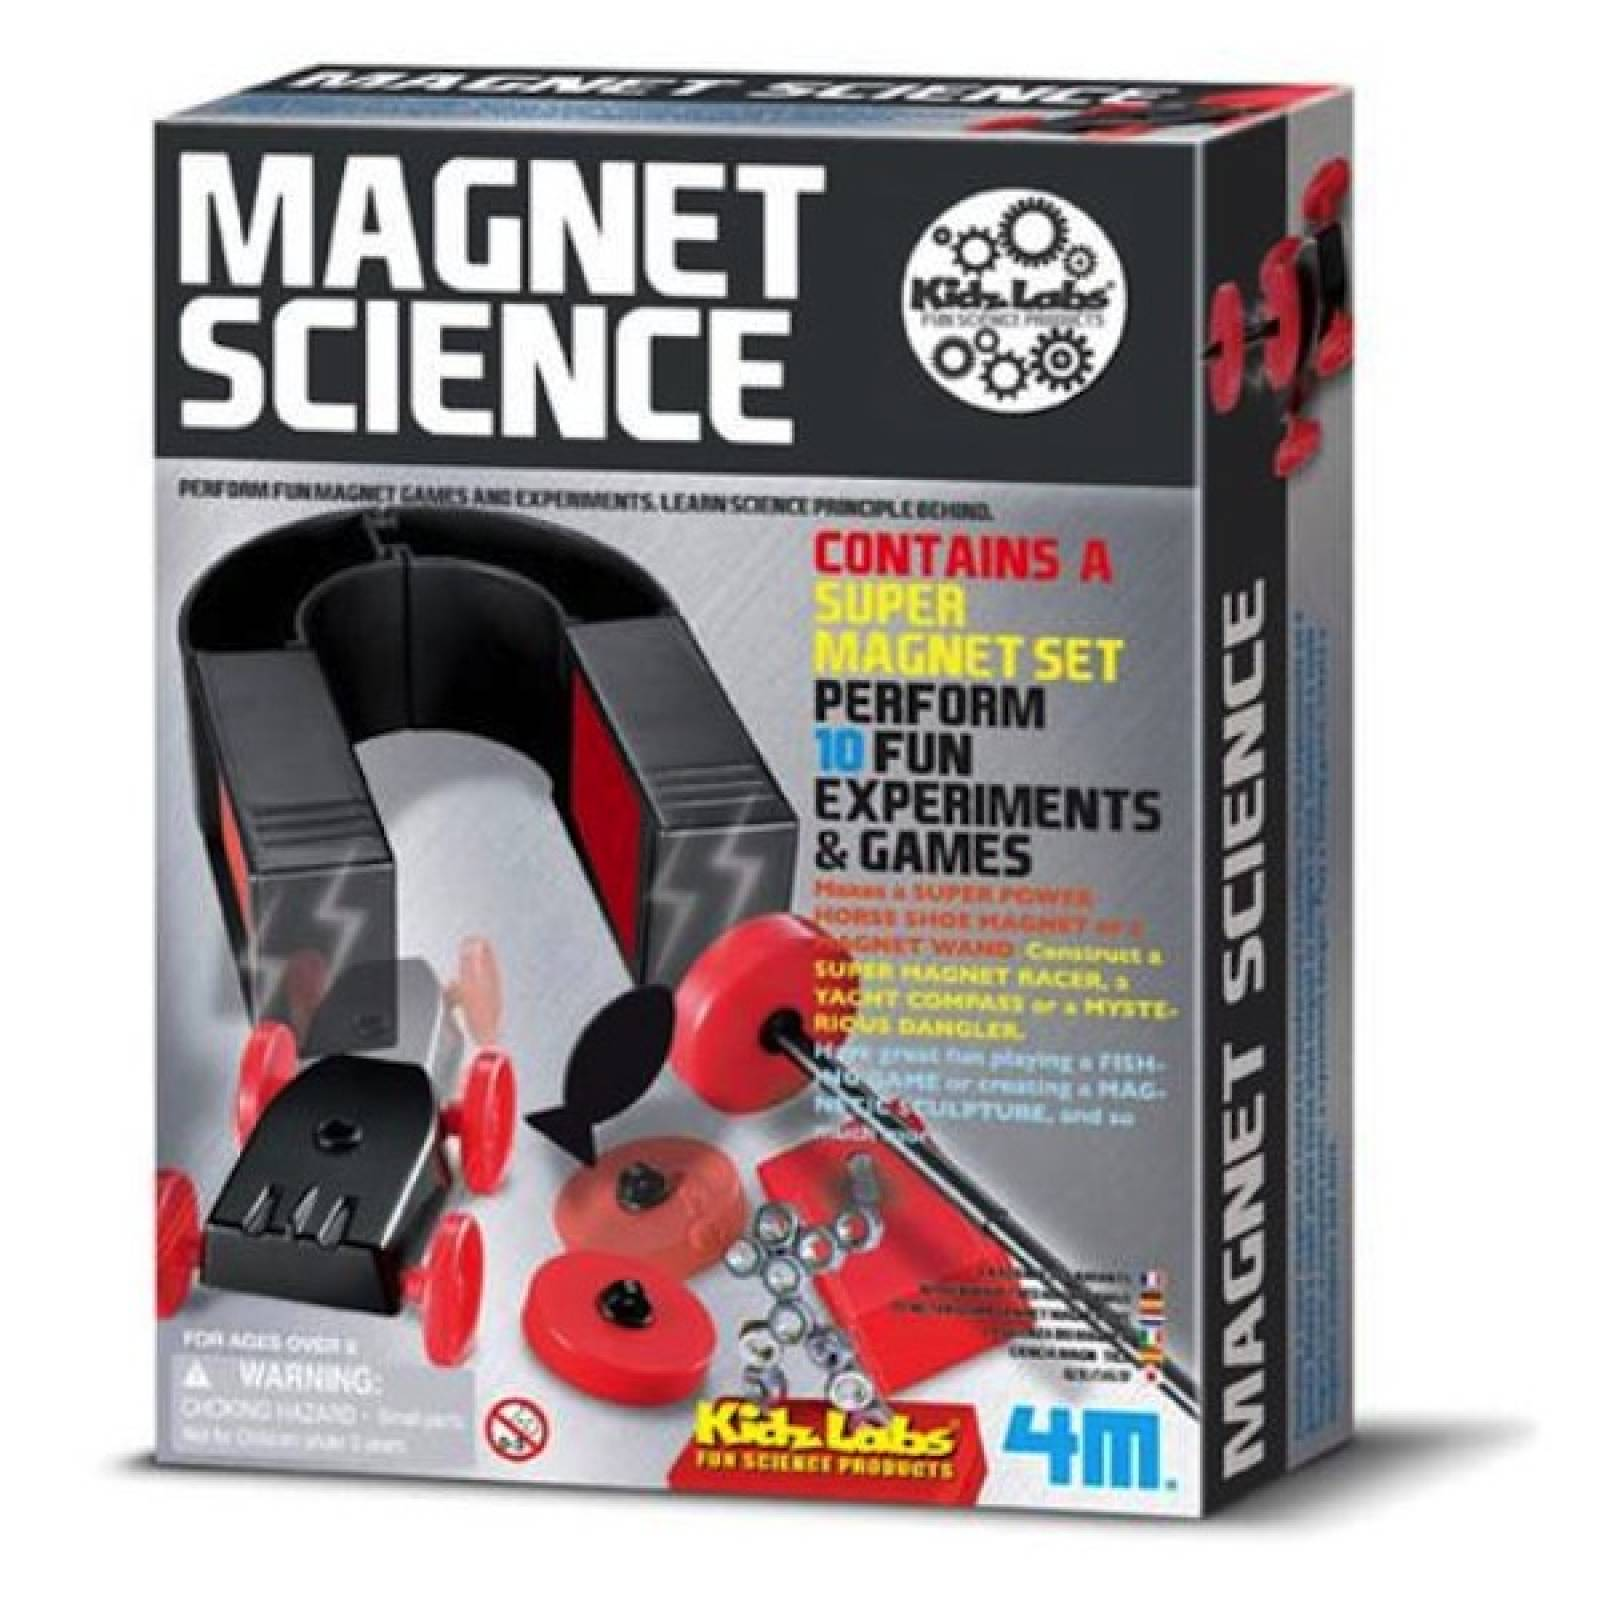 Magnet Science - Kids Labz 8yr+ thumbnails